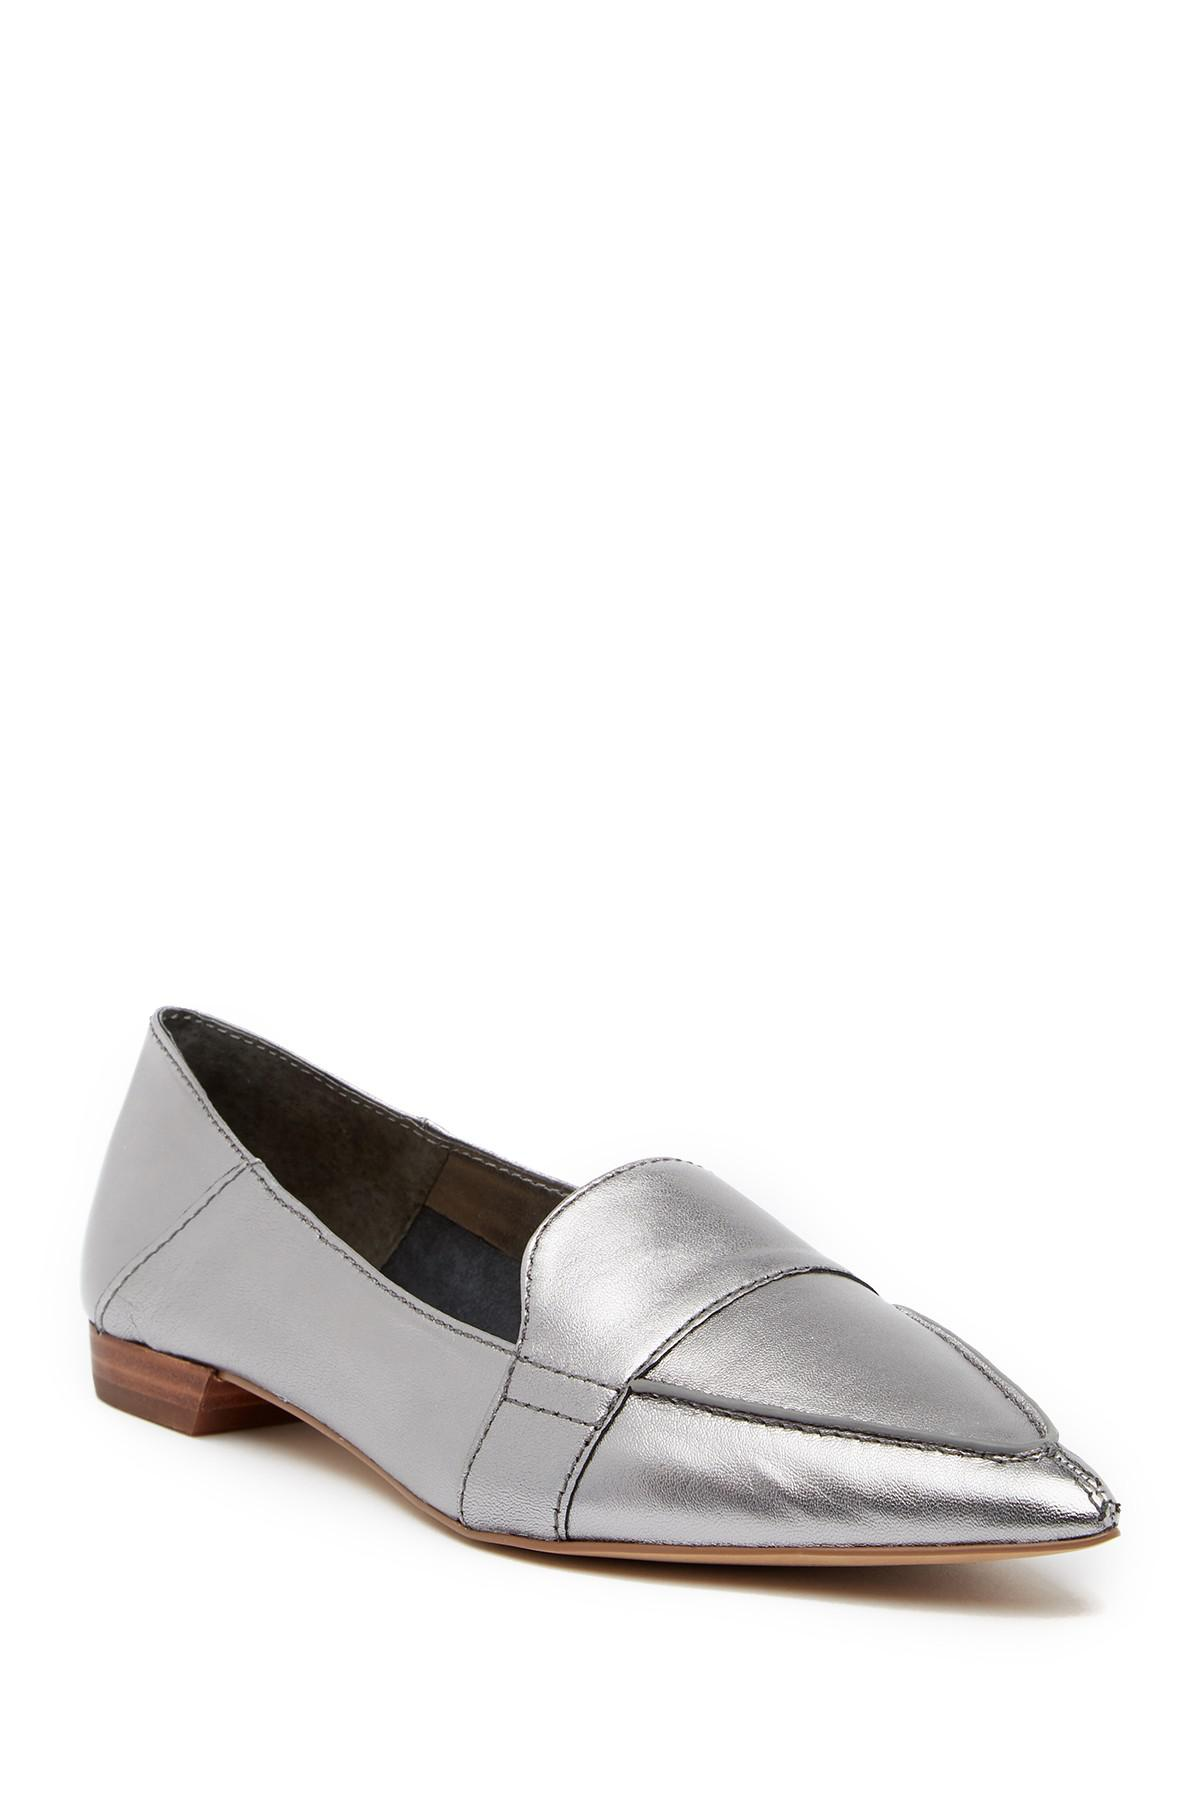 bbcb43afa4a Vince Camuto. Women s Maita Pointed Toe Leather Loafer